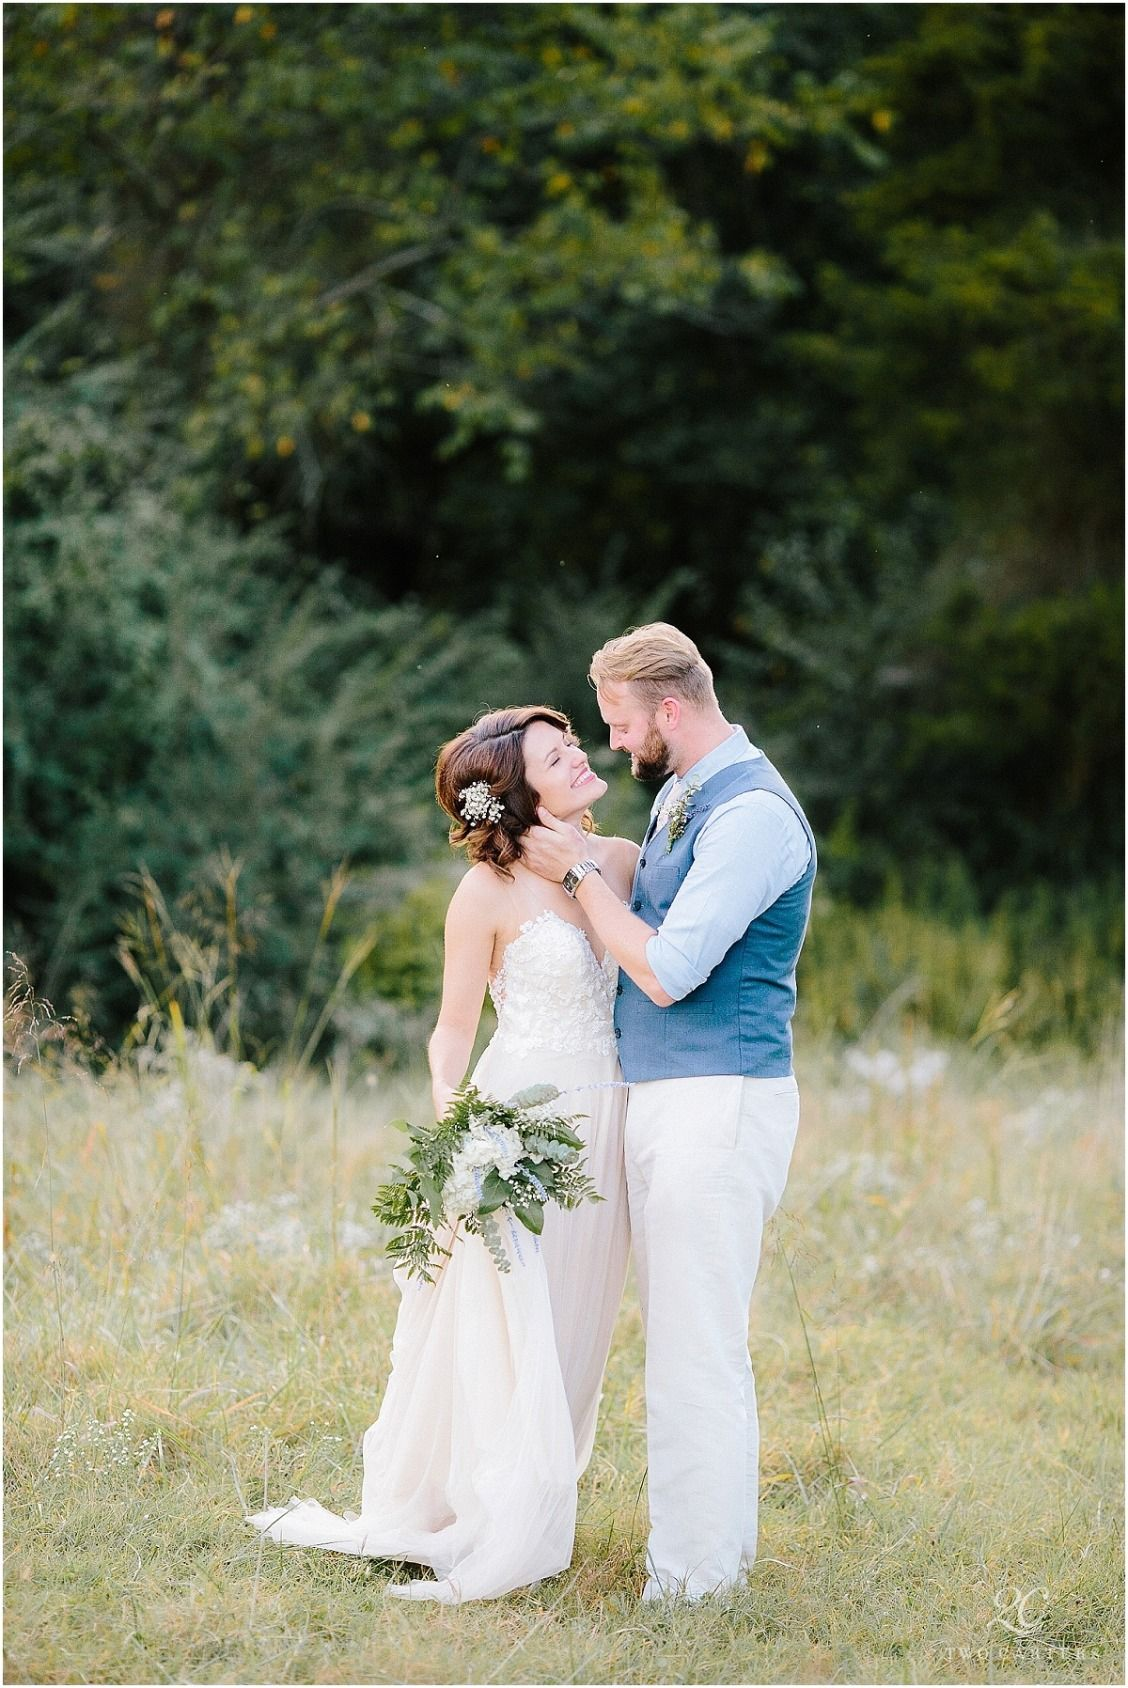 Rustic chic wedding at an arkansas barn stella york wedding dress